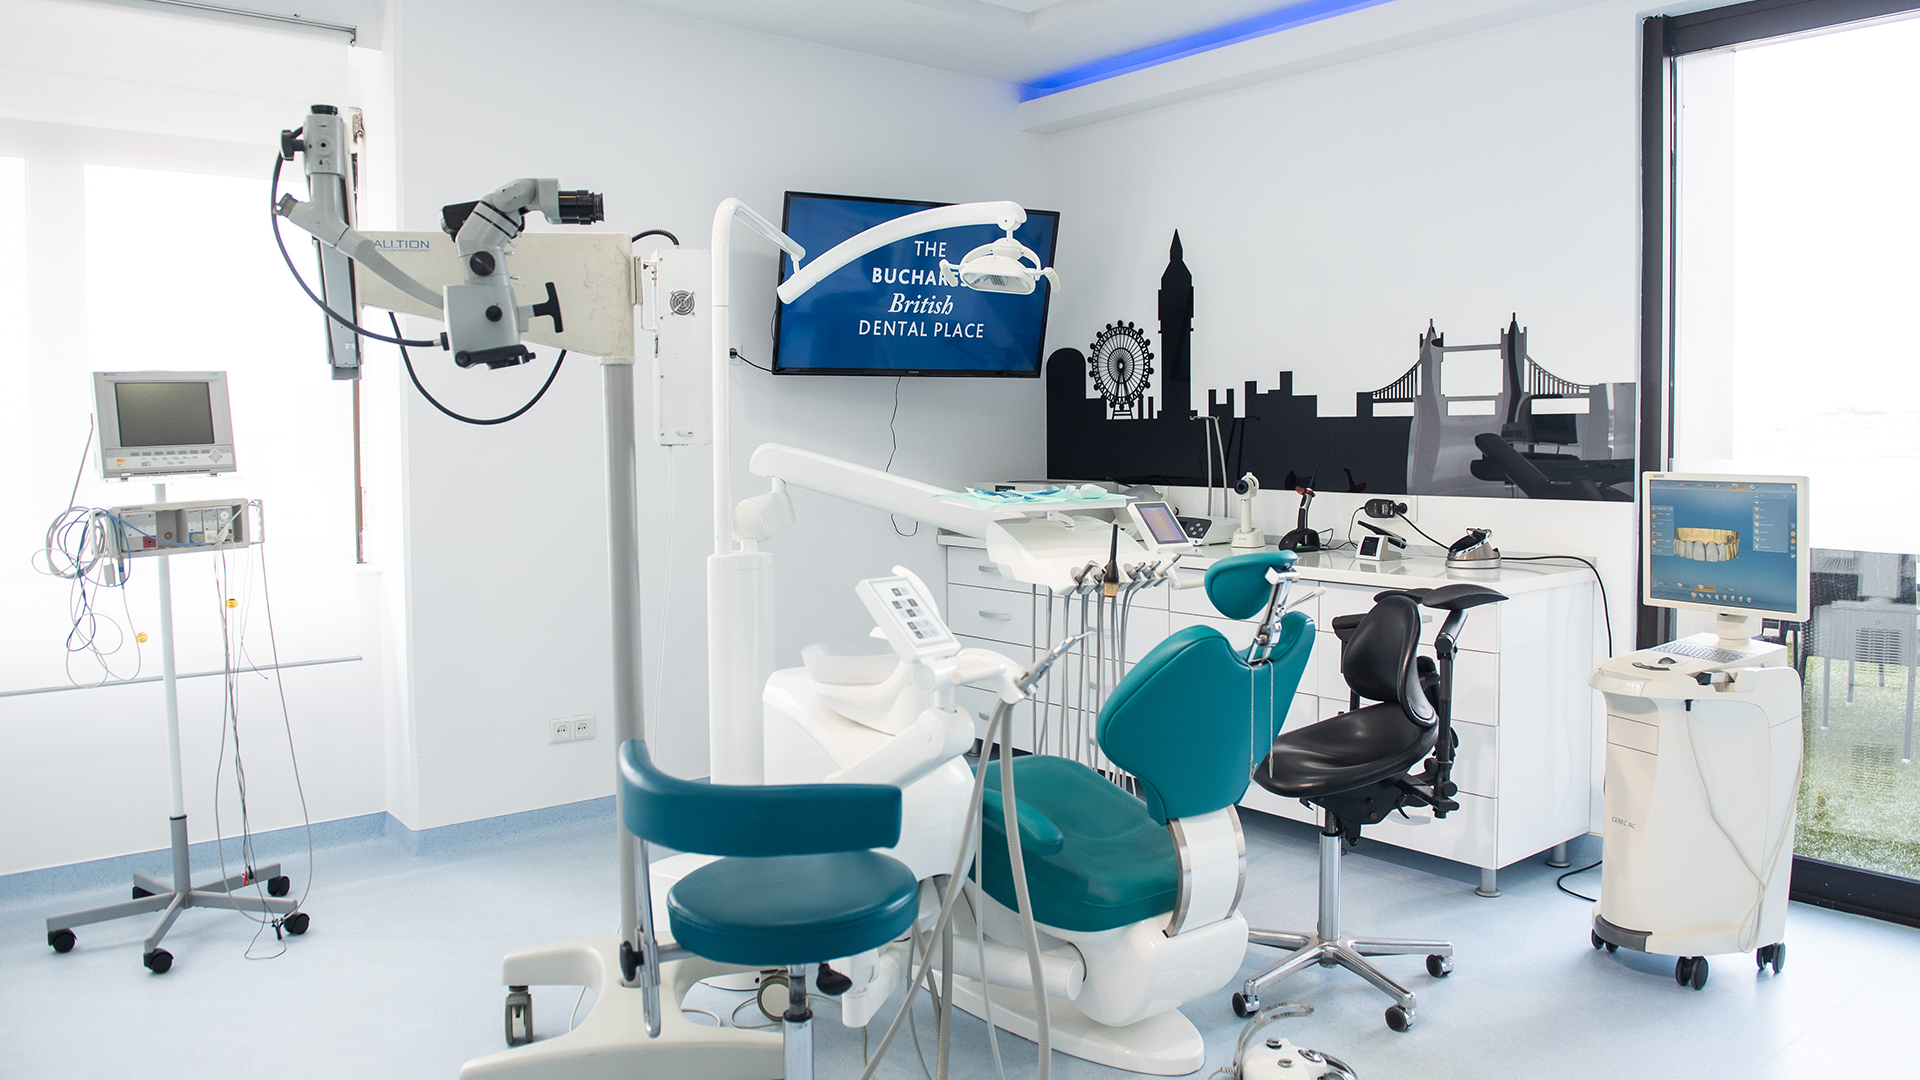 Clinica British Dental Place